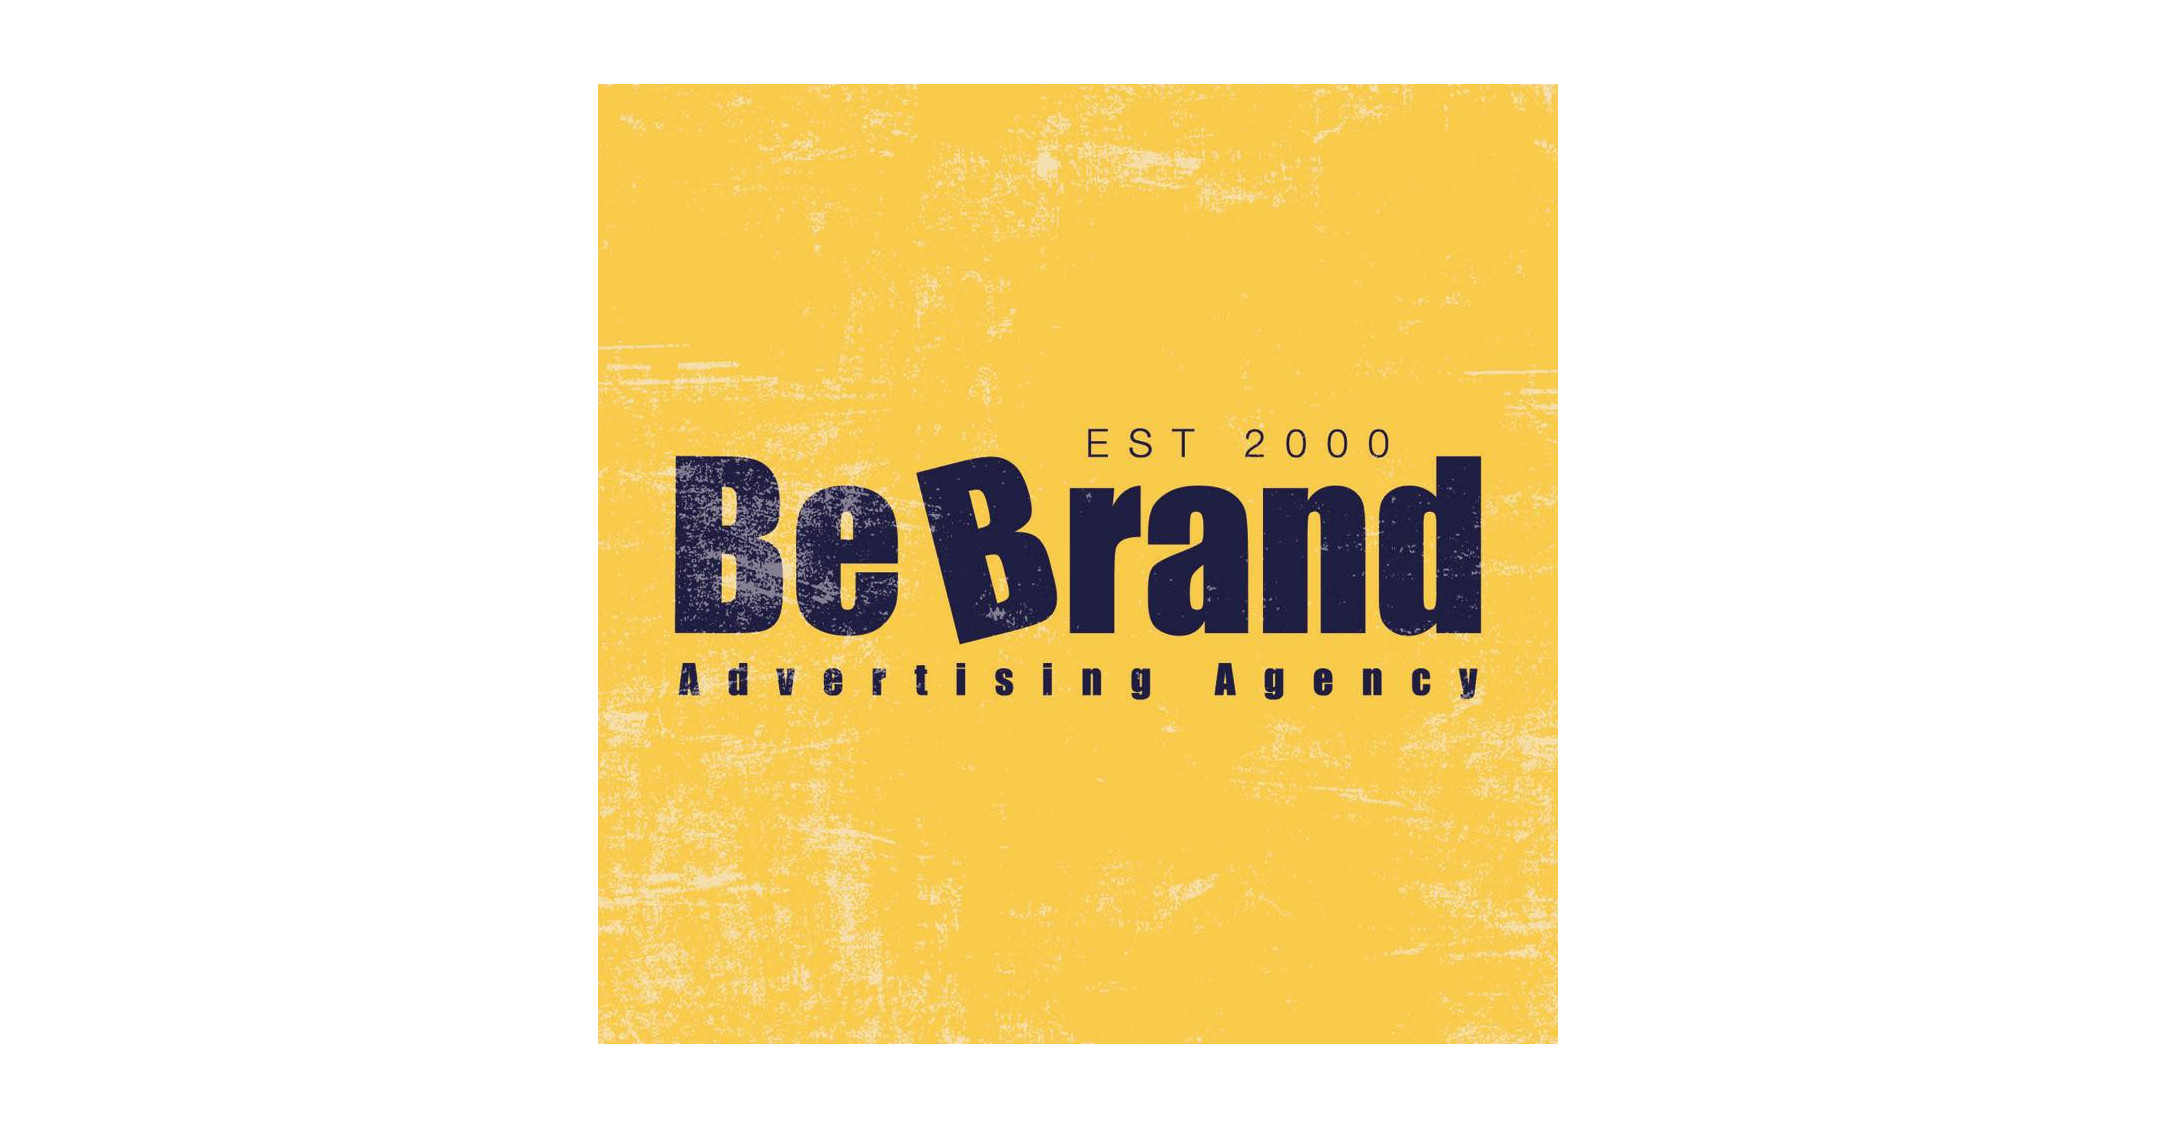 Job: Graphic Designer at BeBrand in Cairo, Egypt